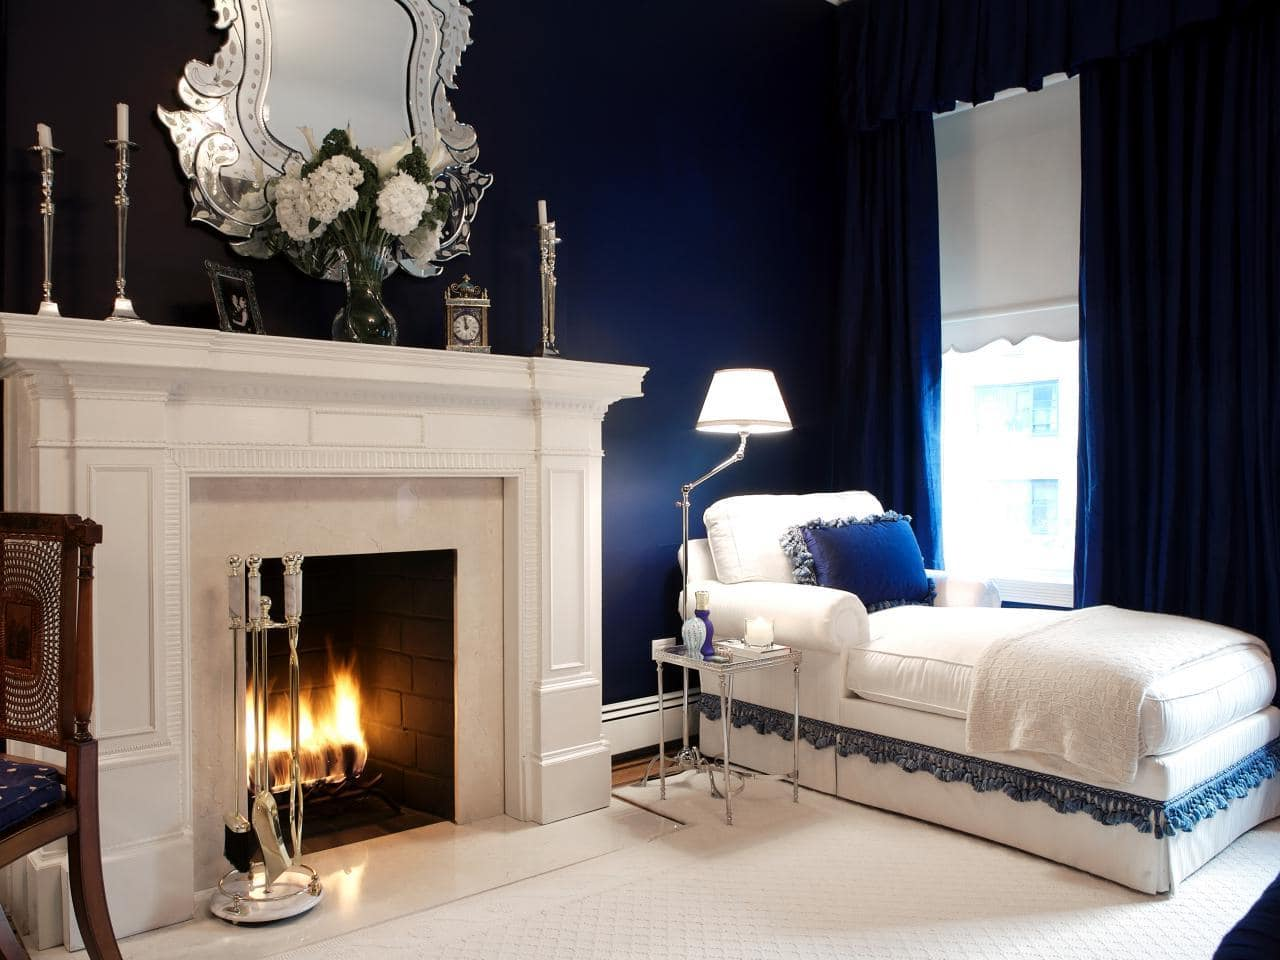 Blue colored walls and white stucco fireplace